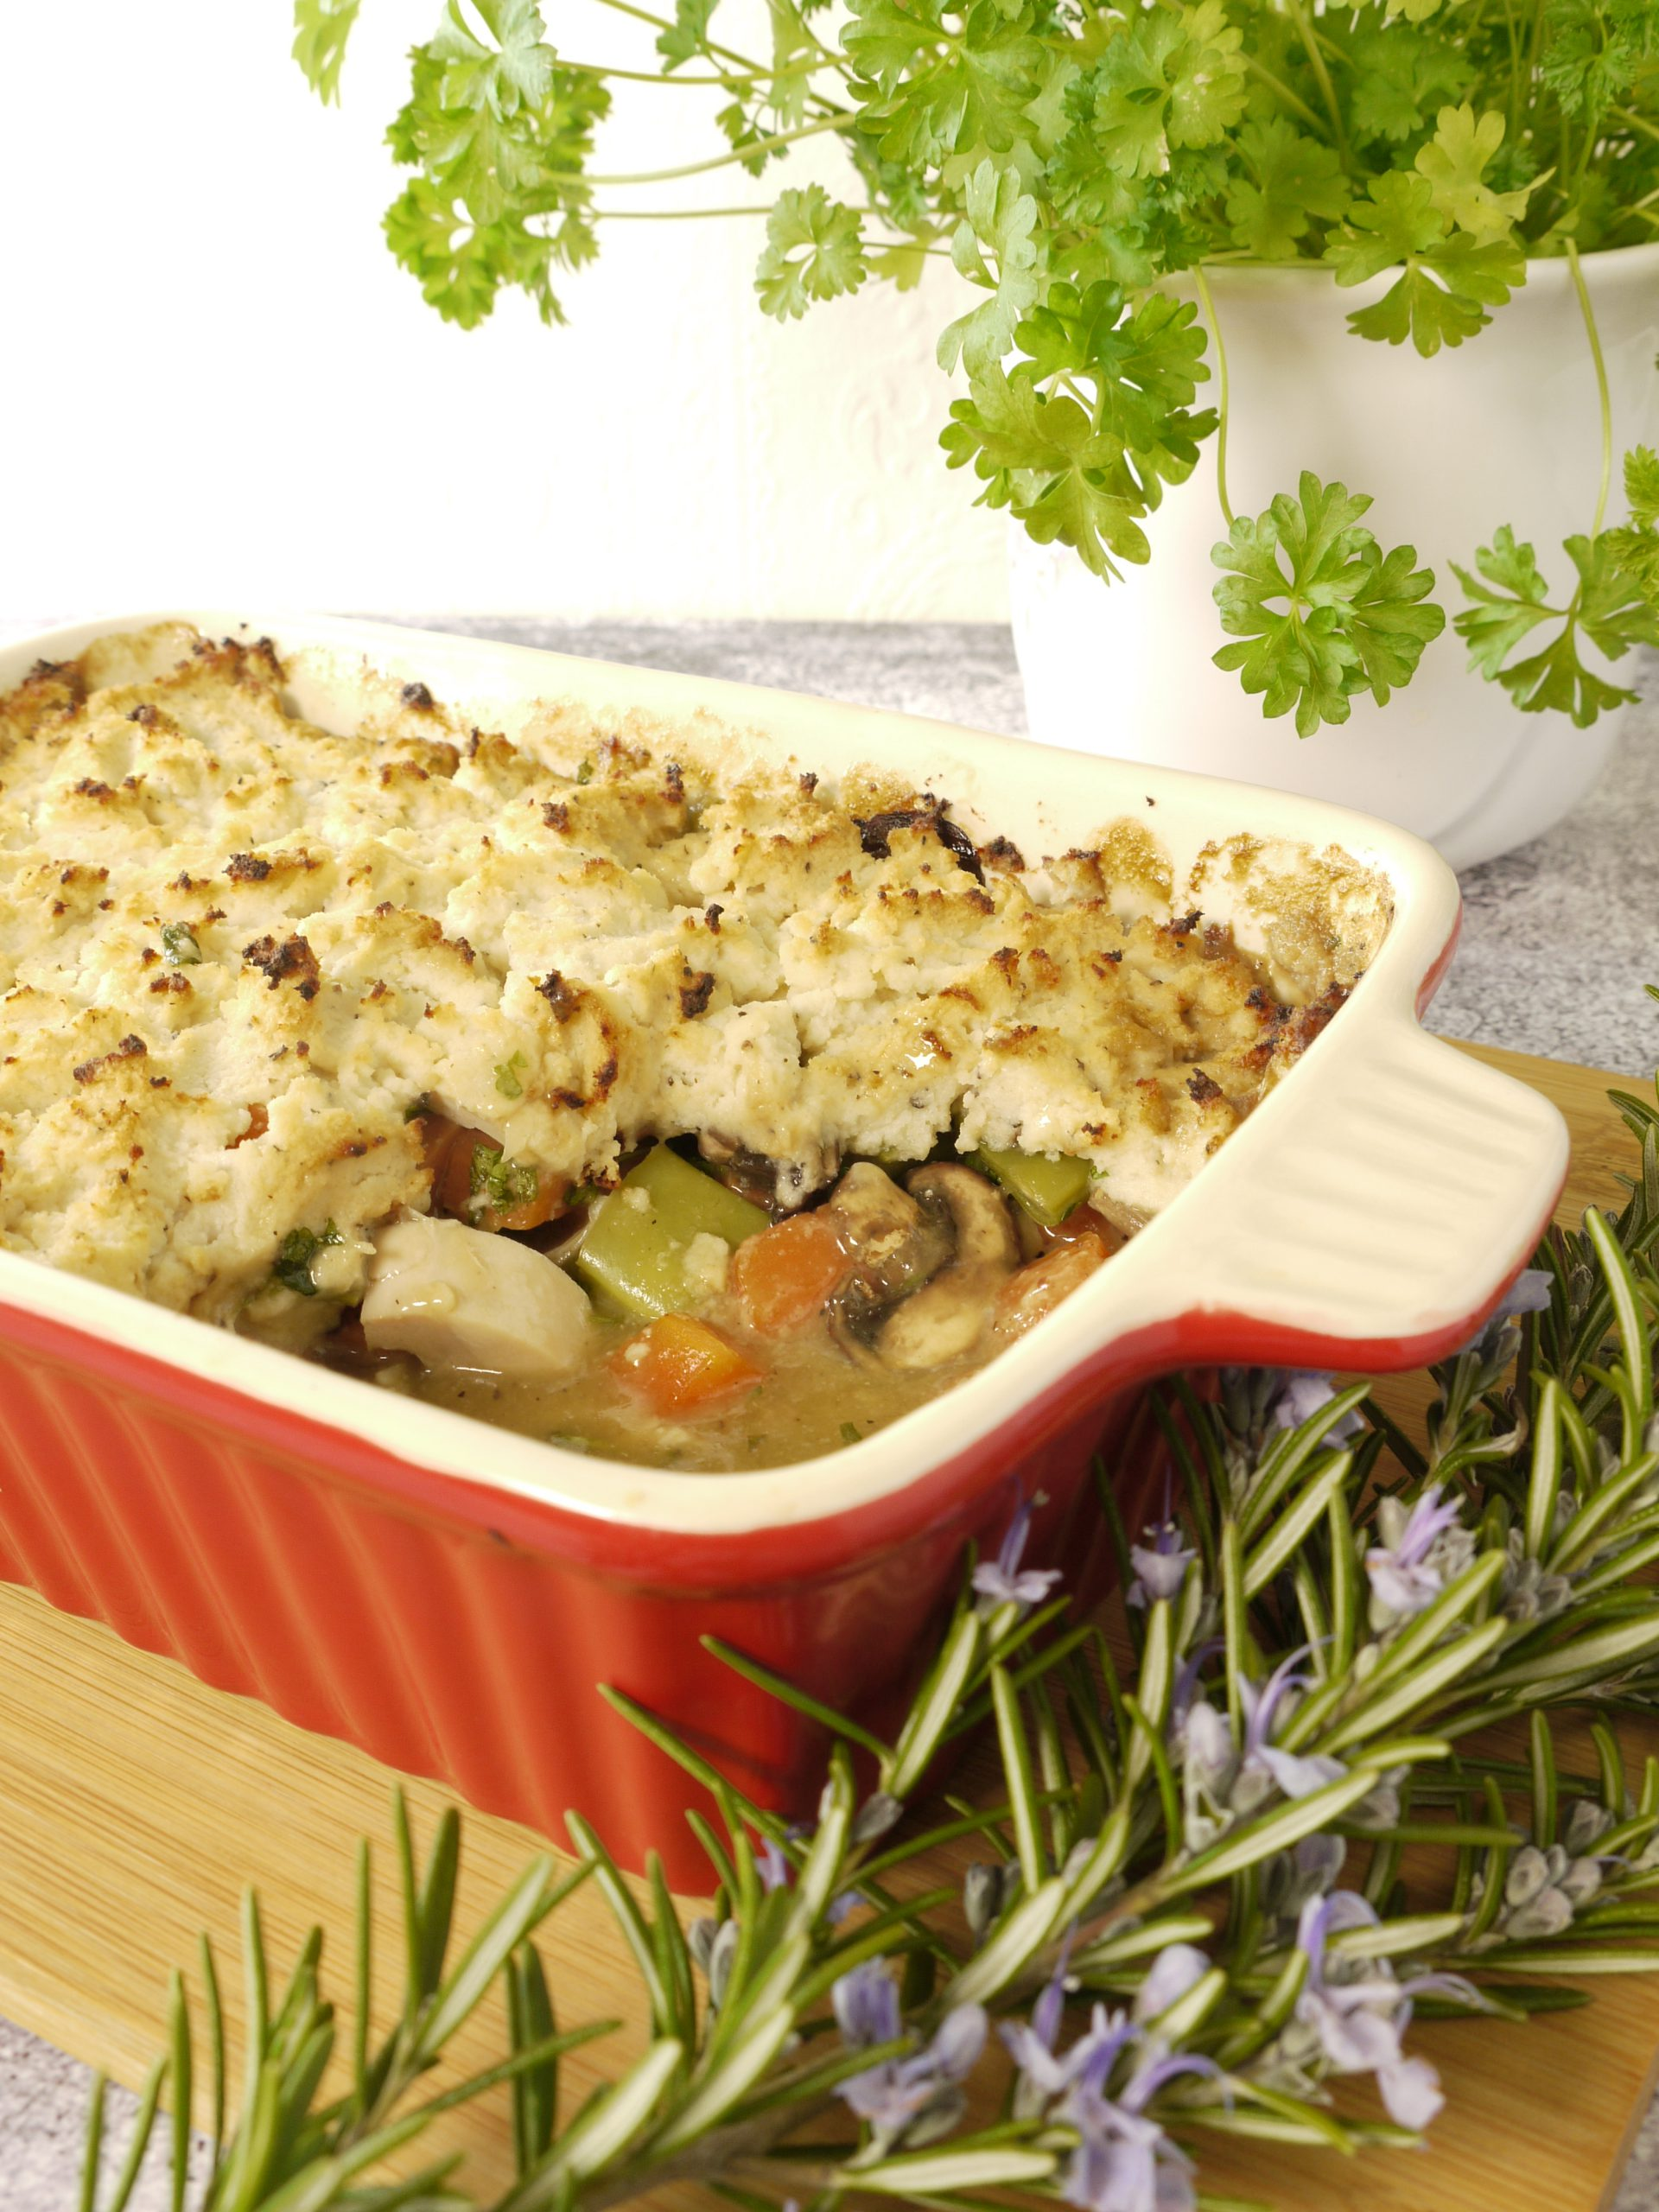 What to do with leftover cooked chicken make Chicken Pie from Leftovers by Design